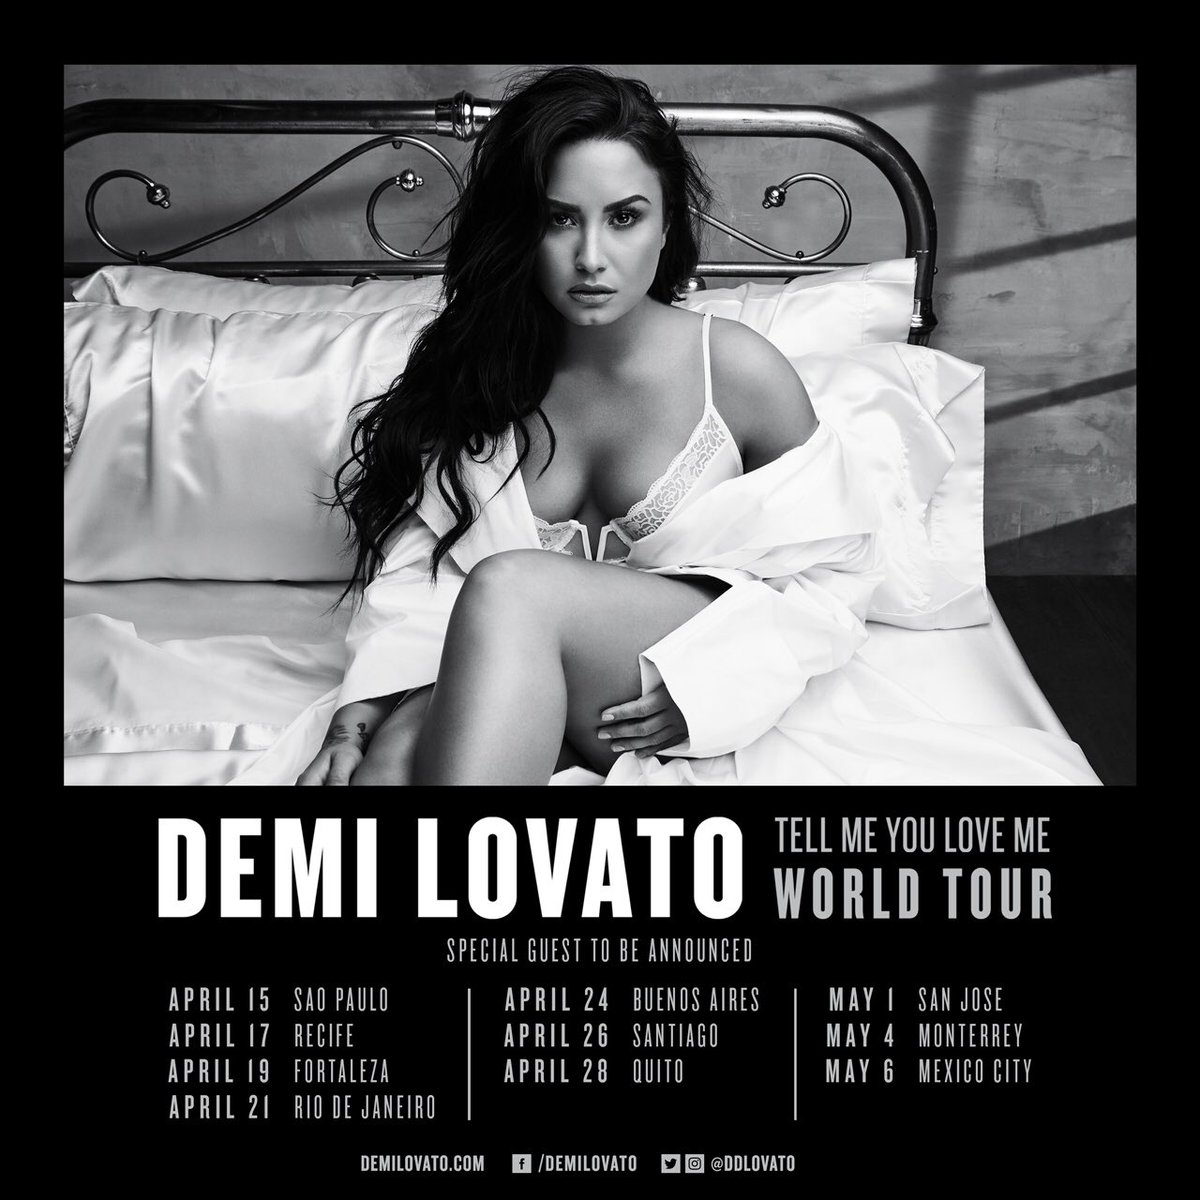 Mexico 🇲🇽 It's your turn!! Tickets for the #TellMeYouLoveMeTour are on sale now ❤️ https://t.co/FdRYQe0I9Y